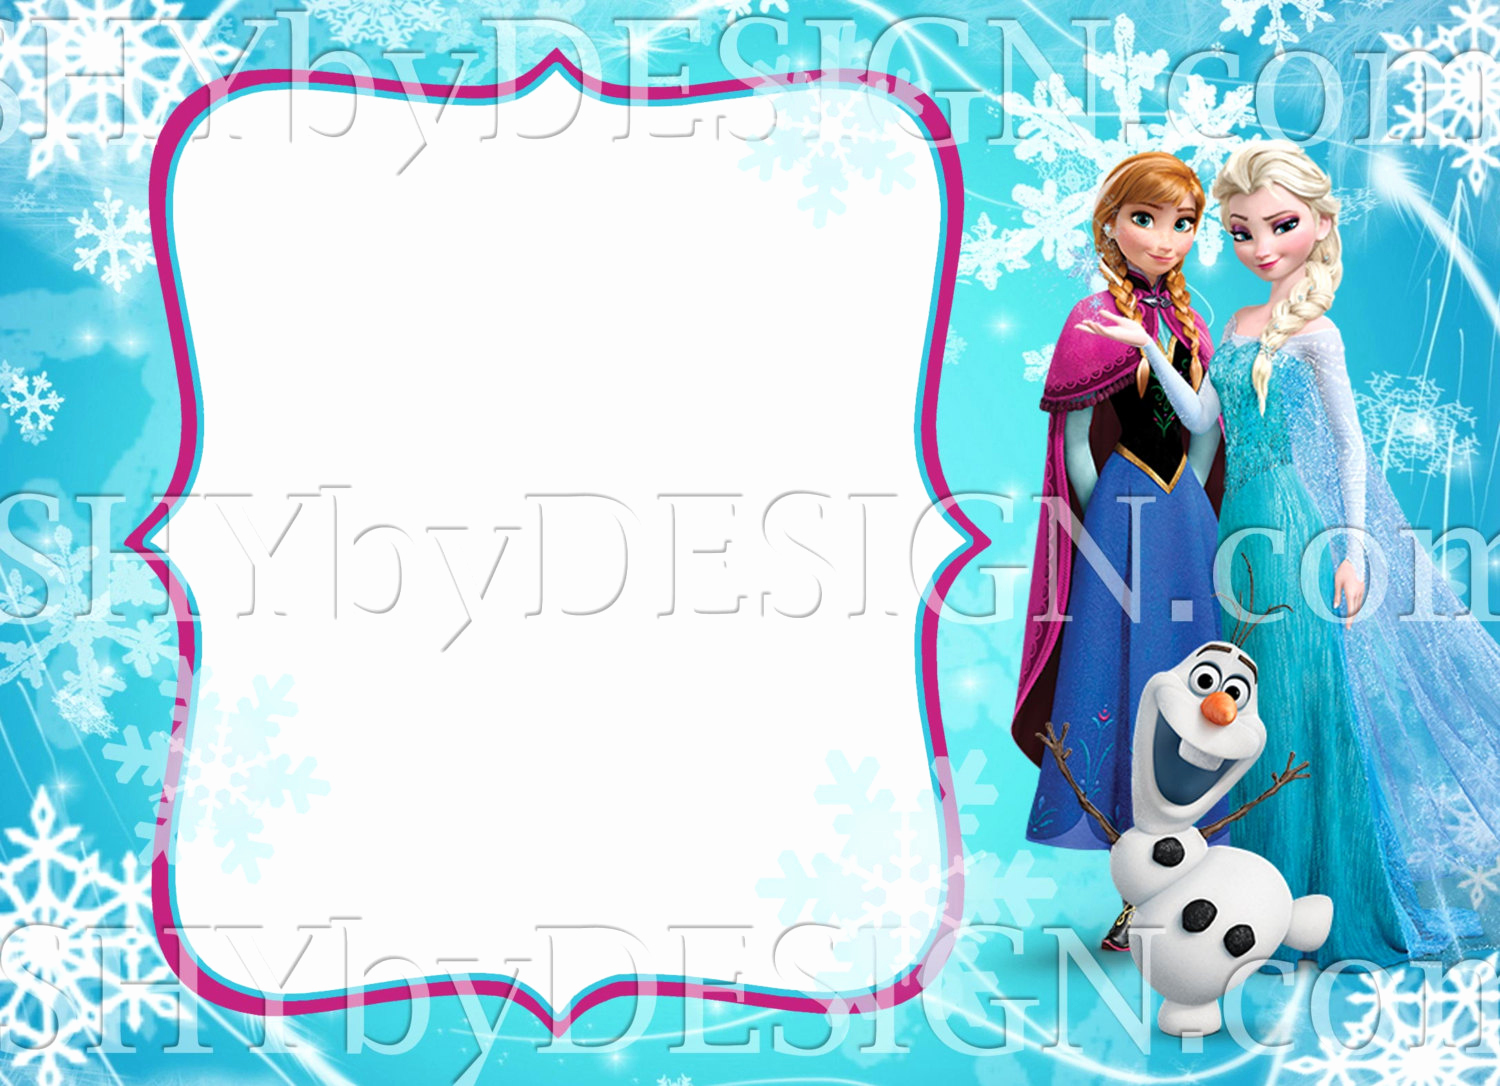 Frozen Invitation Template Free Download Beautiful Diy Frozen Invitation Template